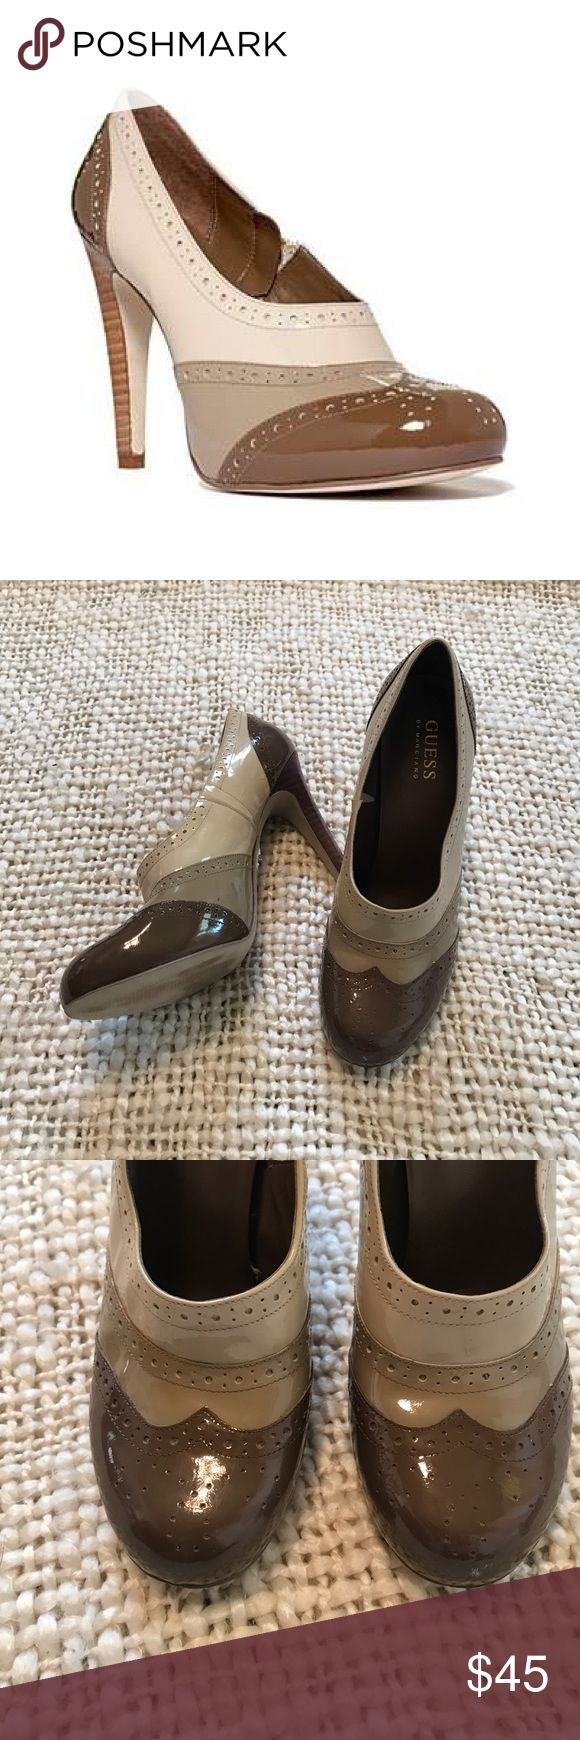 """Guess by Marciano Yerex leather bootie/pump 7.5 Adorable bootie/pump from Guess by Marciano. Style is called Yerex. Patent leather. In great condition. Some scuffing on the right heel pad, see photo. Heel height is 4.5"""". Guess by Marciano Shoes Heels"""